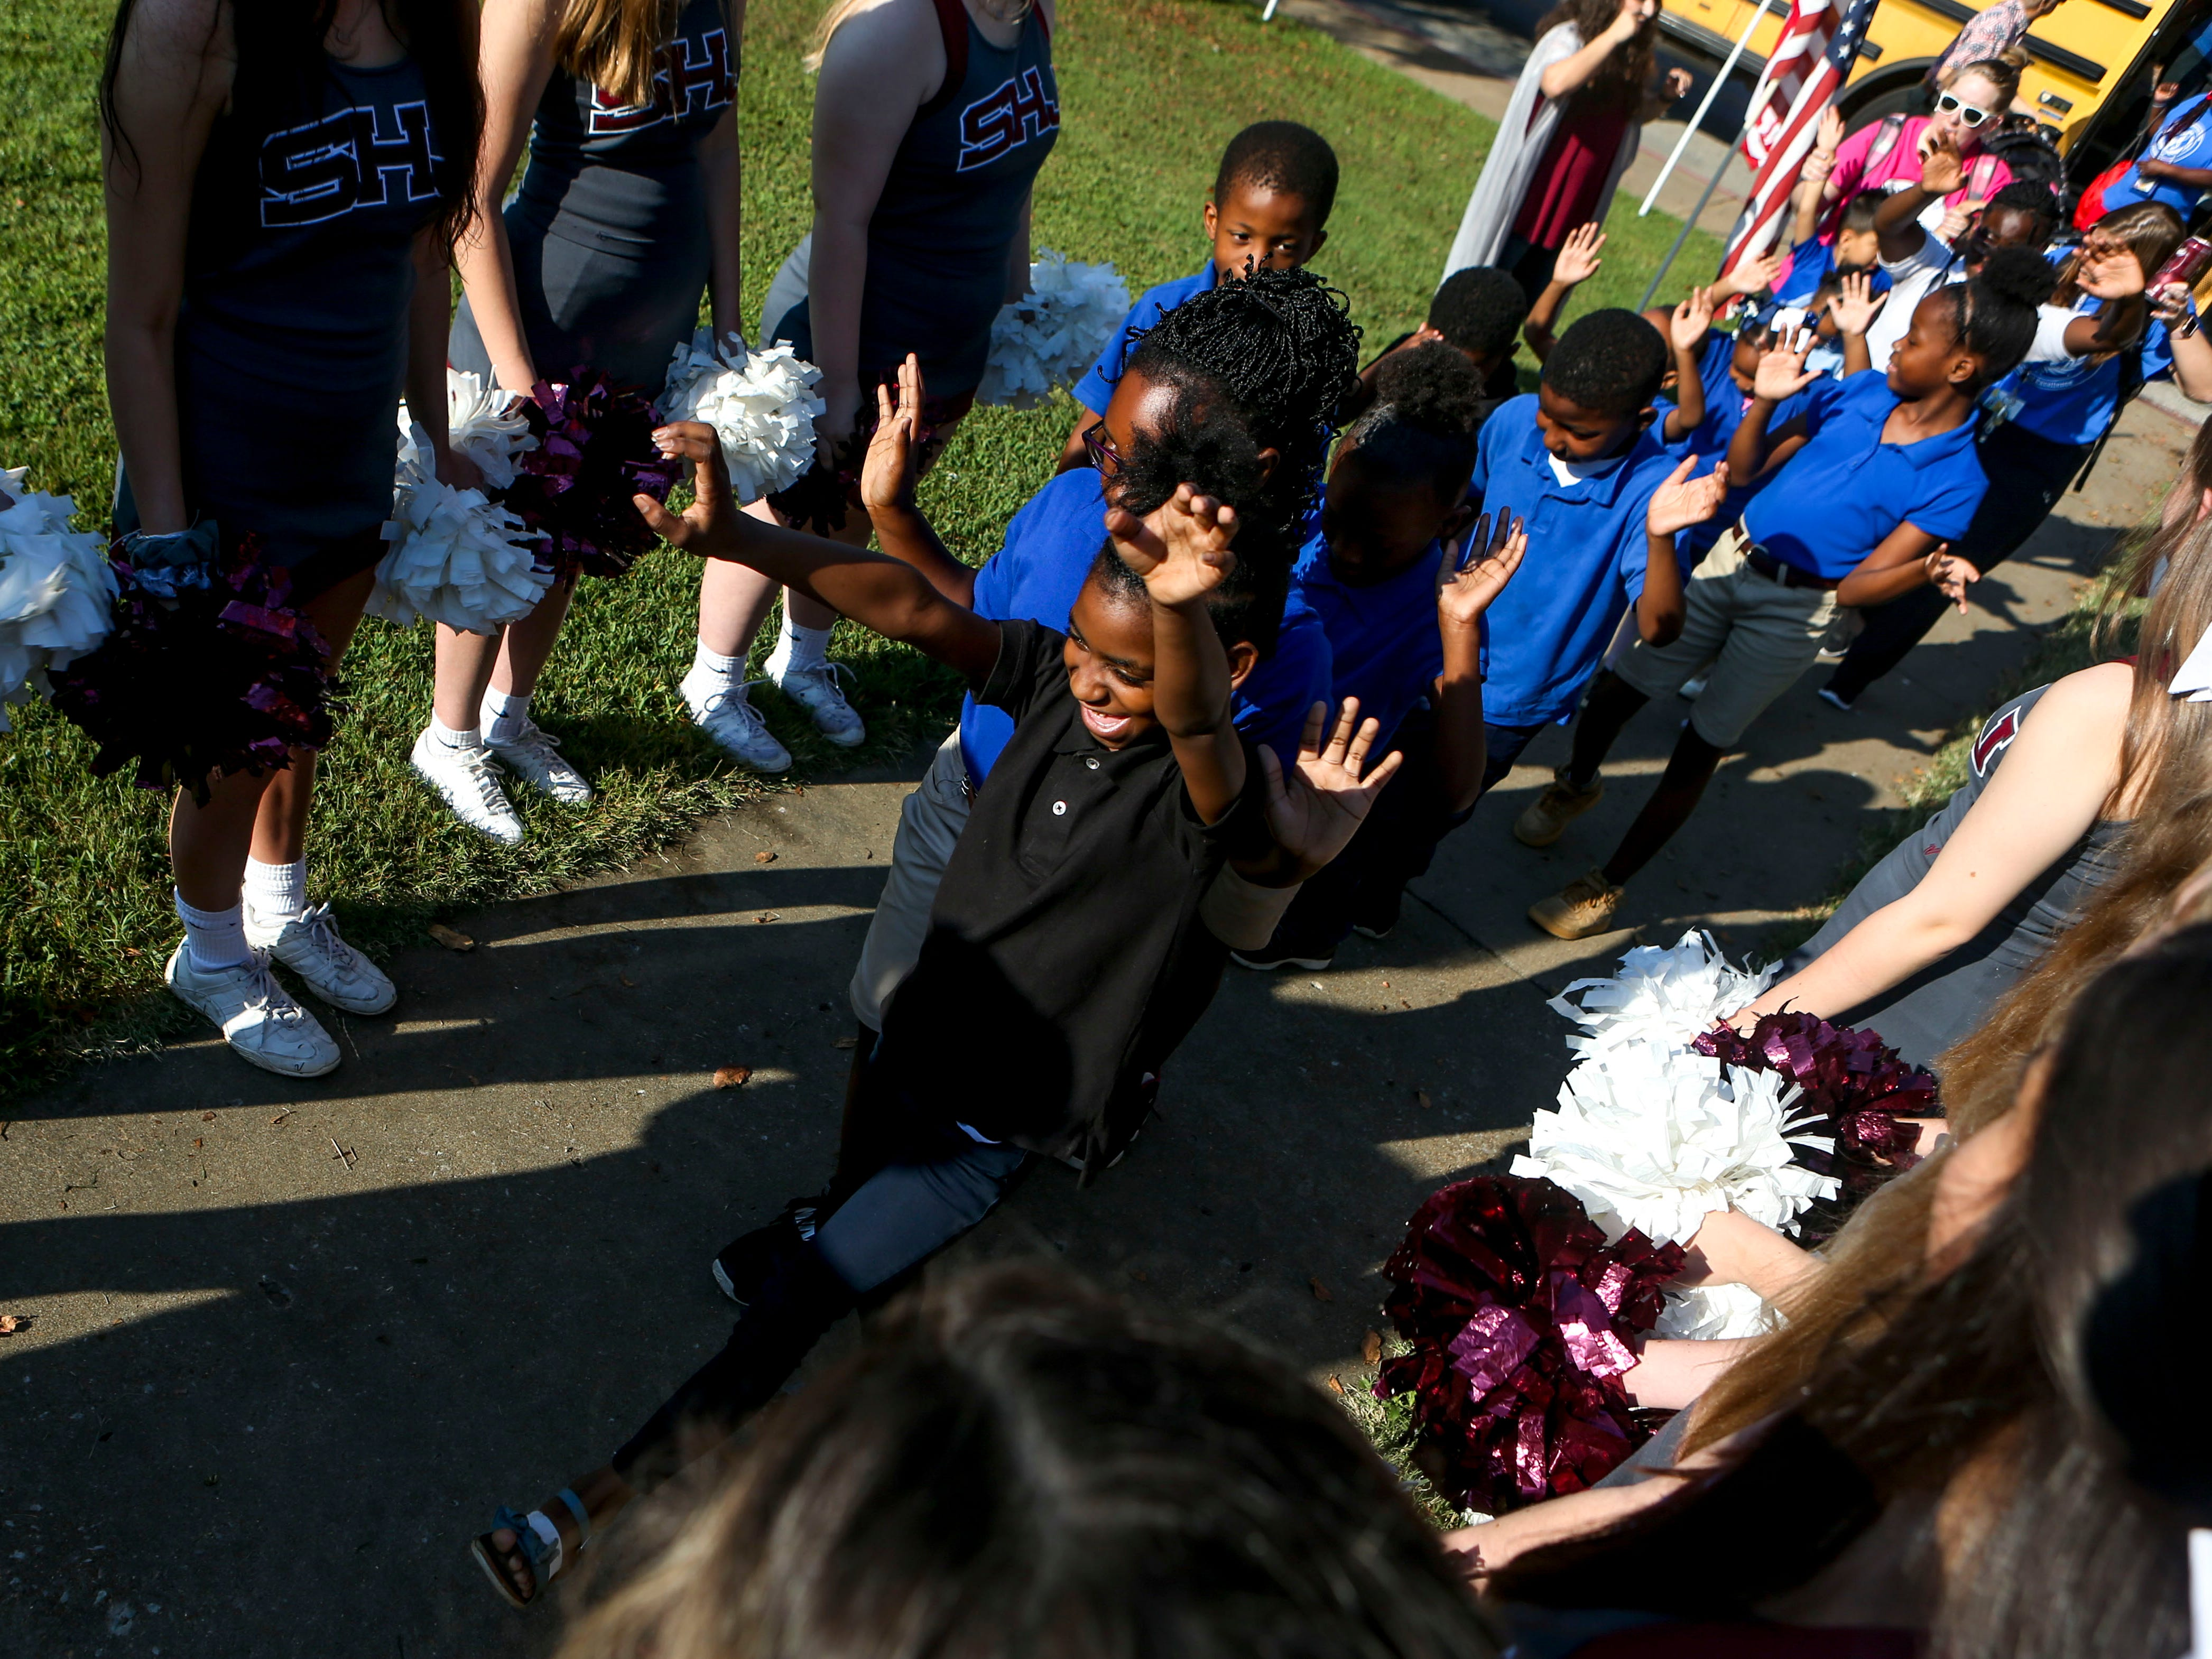 Attendees arrive to high fives from Sacred Heart cheerleaders and football players at the Day of Champions celebration held at Jackson Fairgrounds Park in Jackson, Tenn., on Wednesday, Sept. 19, 2018.